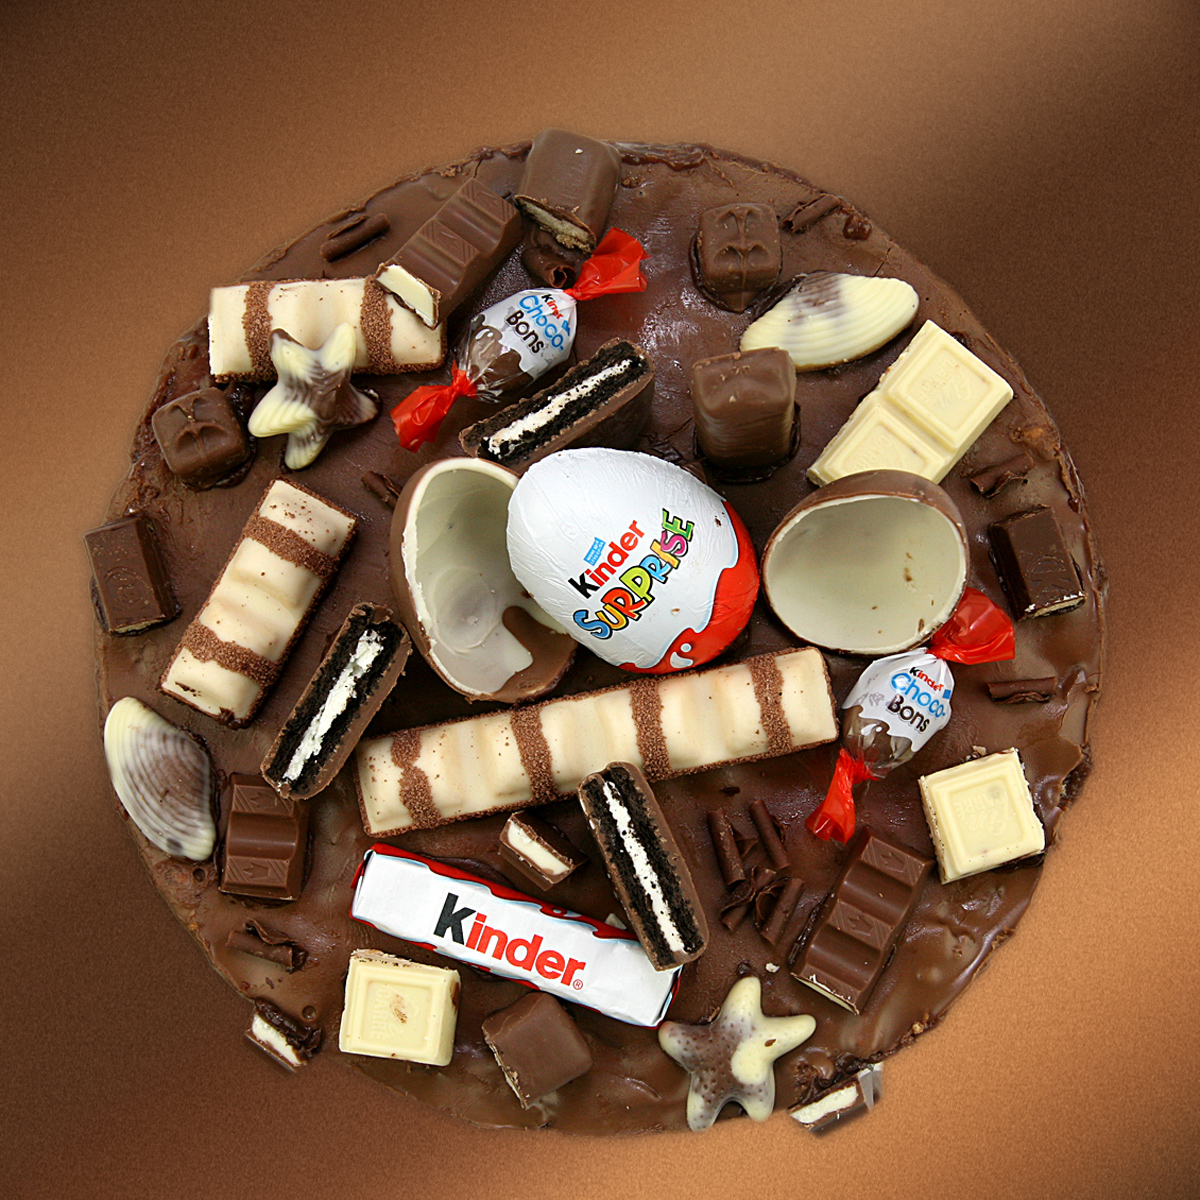 Kinder Chocolate, Sweets & Biscuits Cake - Click Image to Close